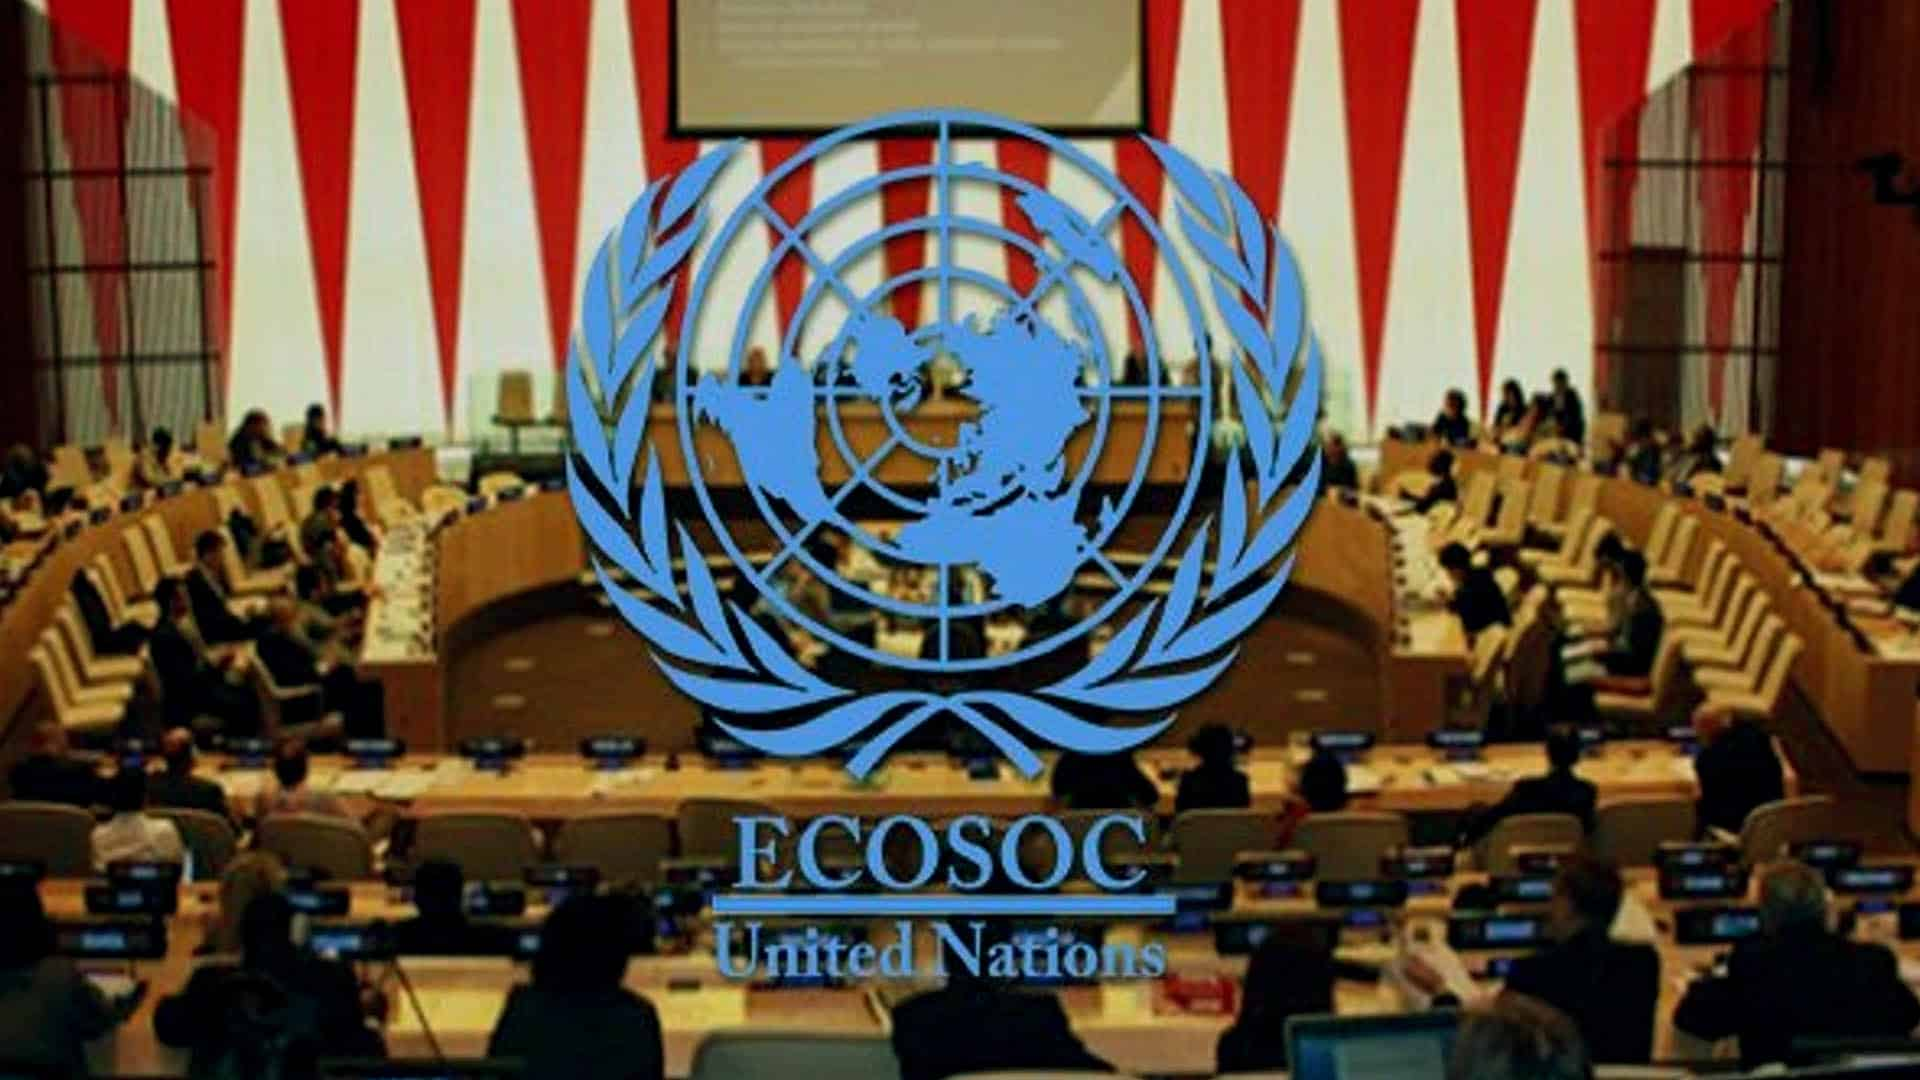 In A First, Israel Gets Elected As Member of the UN Economic and Social Council